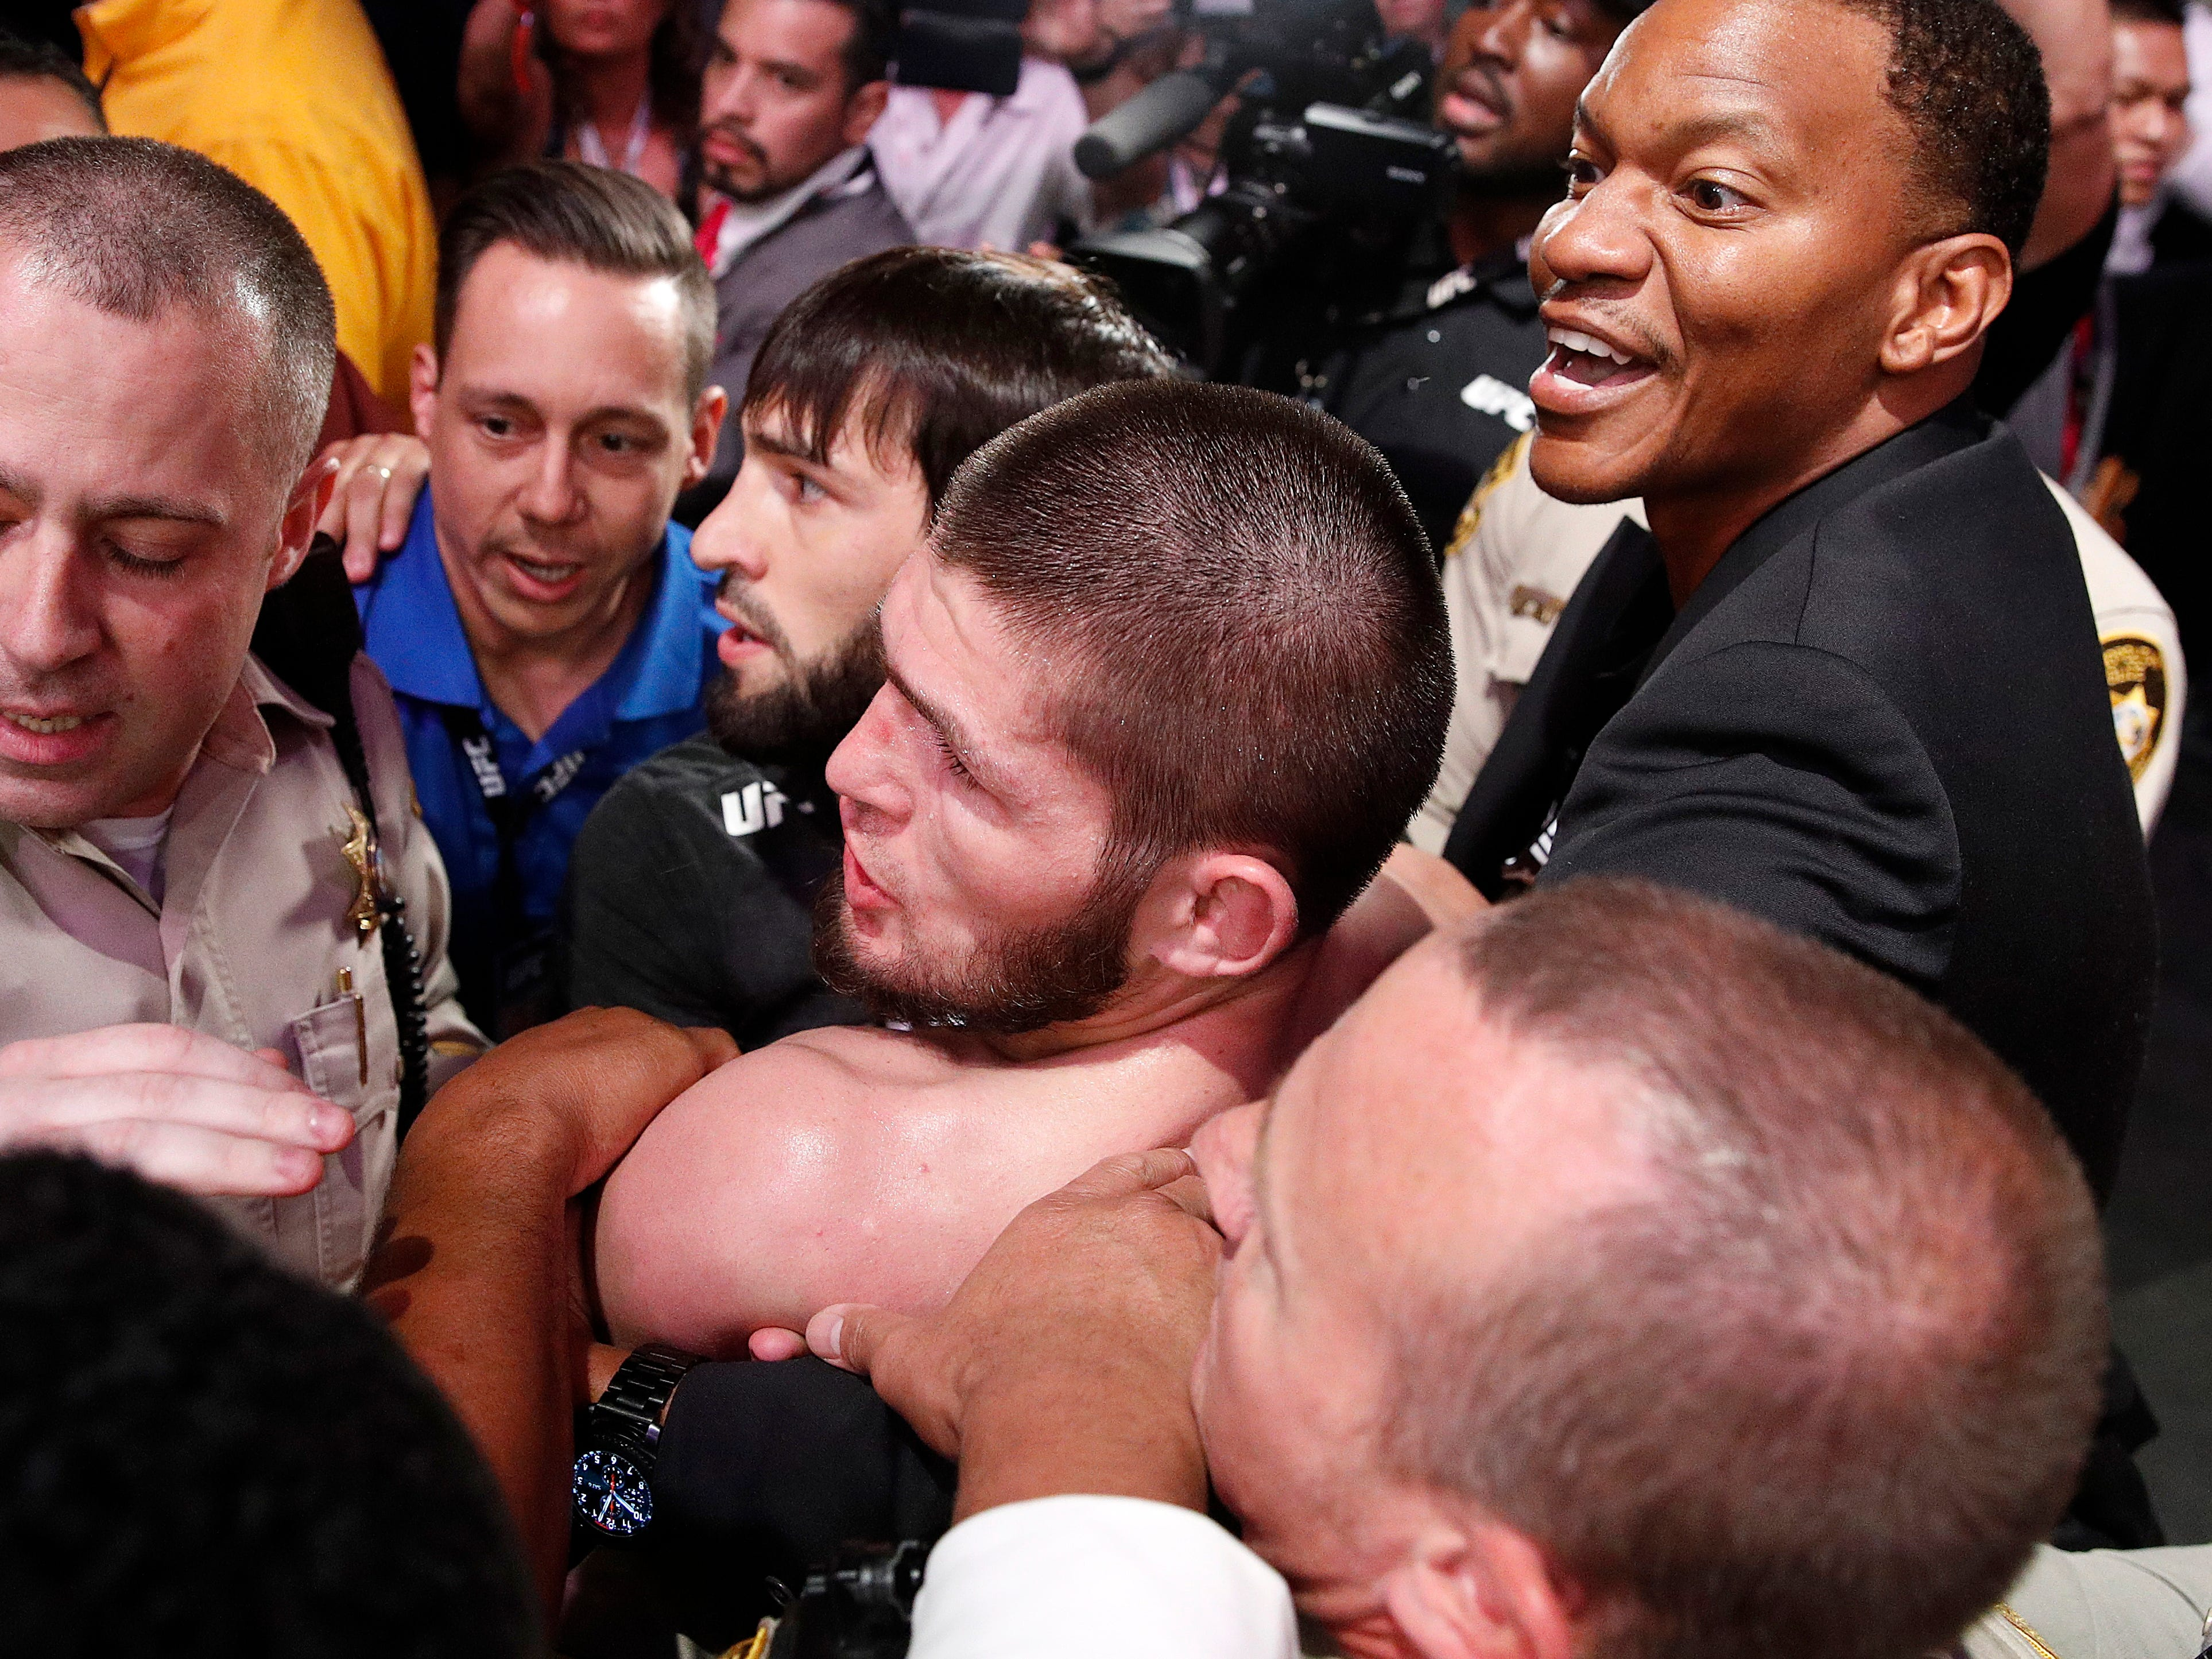 Khabib Nurmagomedov, center, is held back outside of the cage.